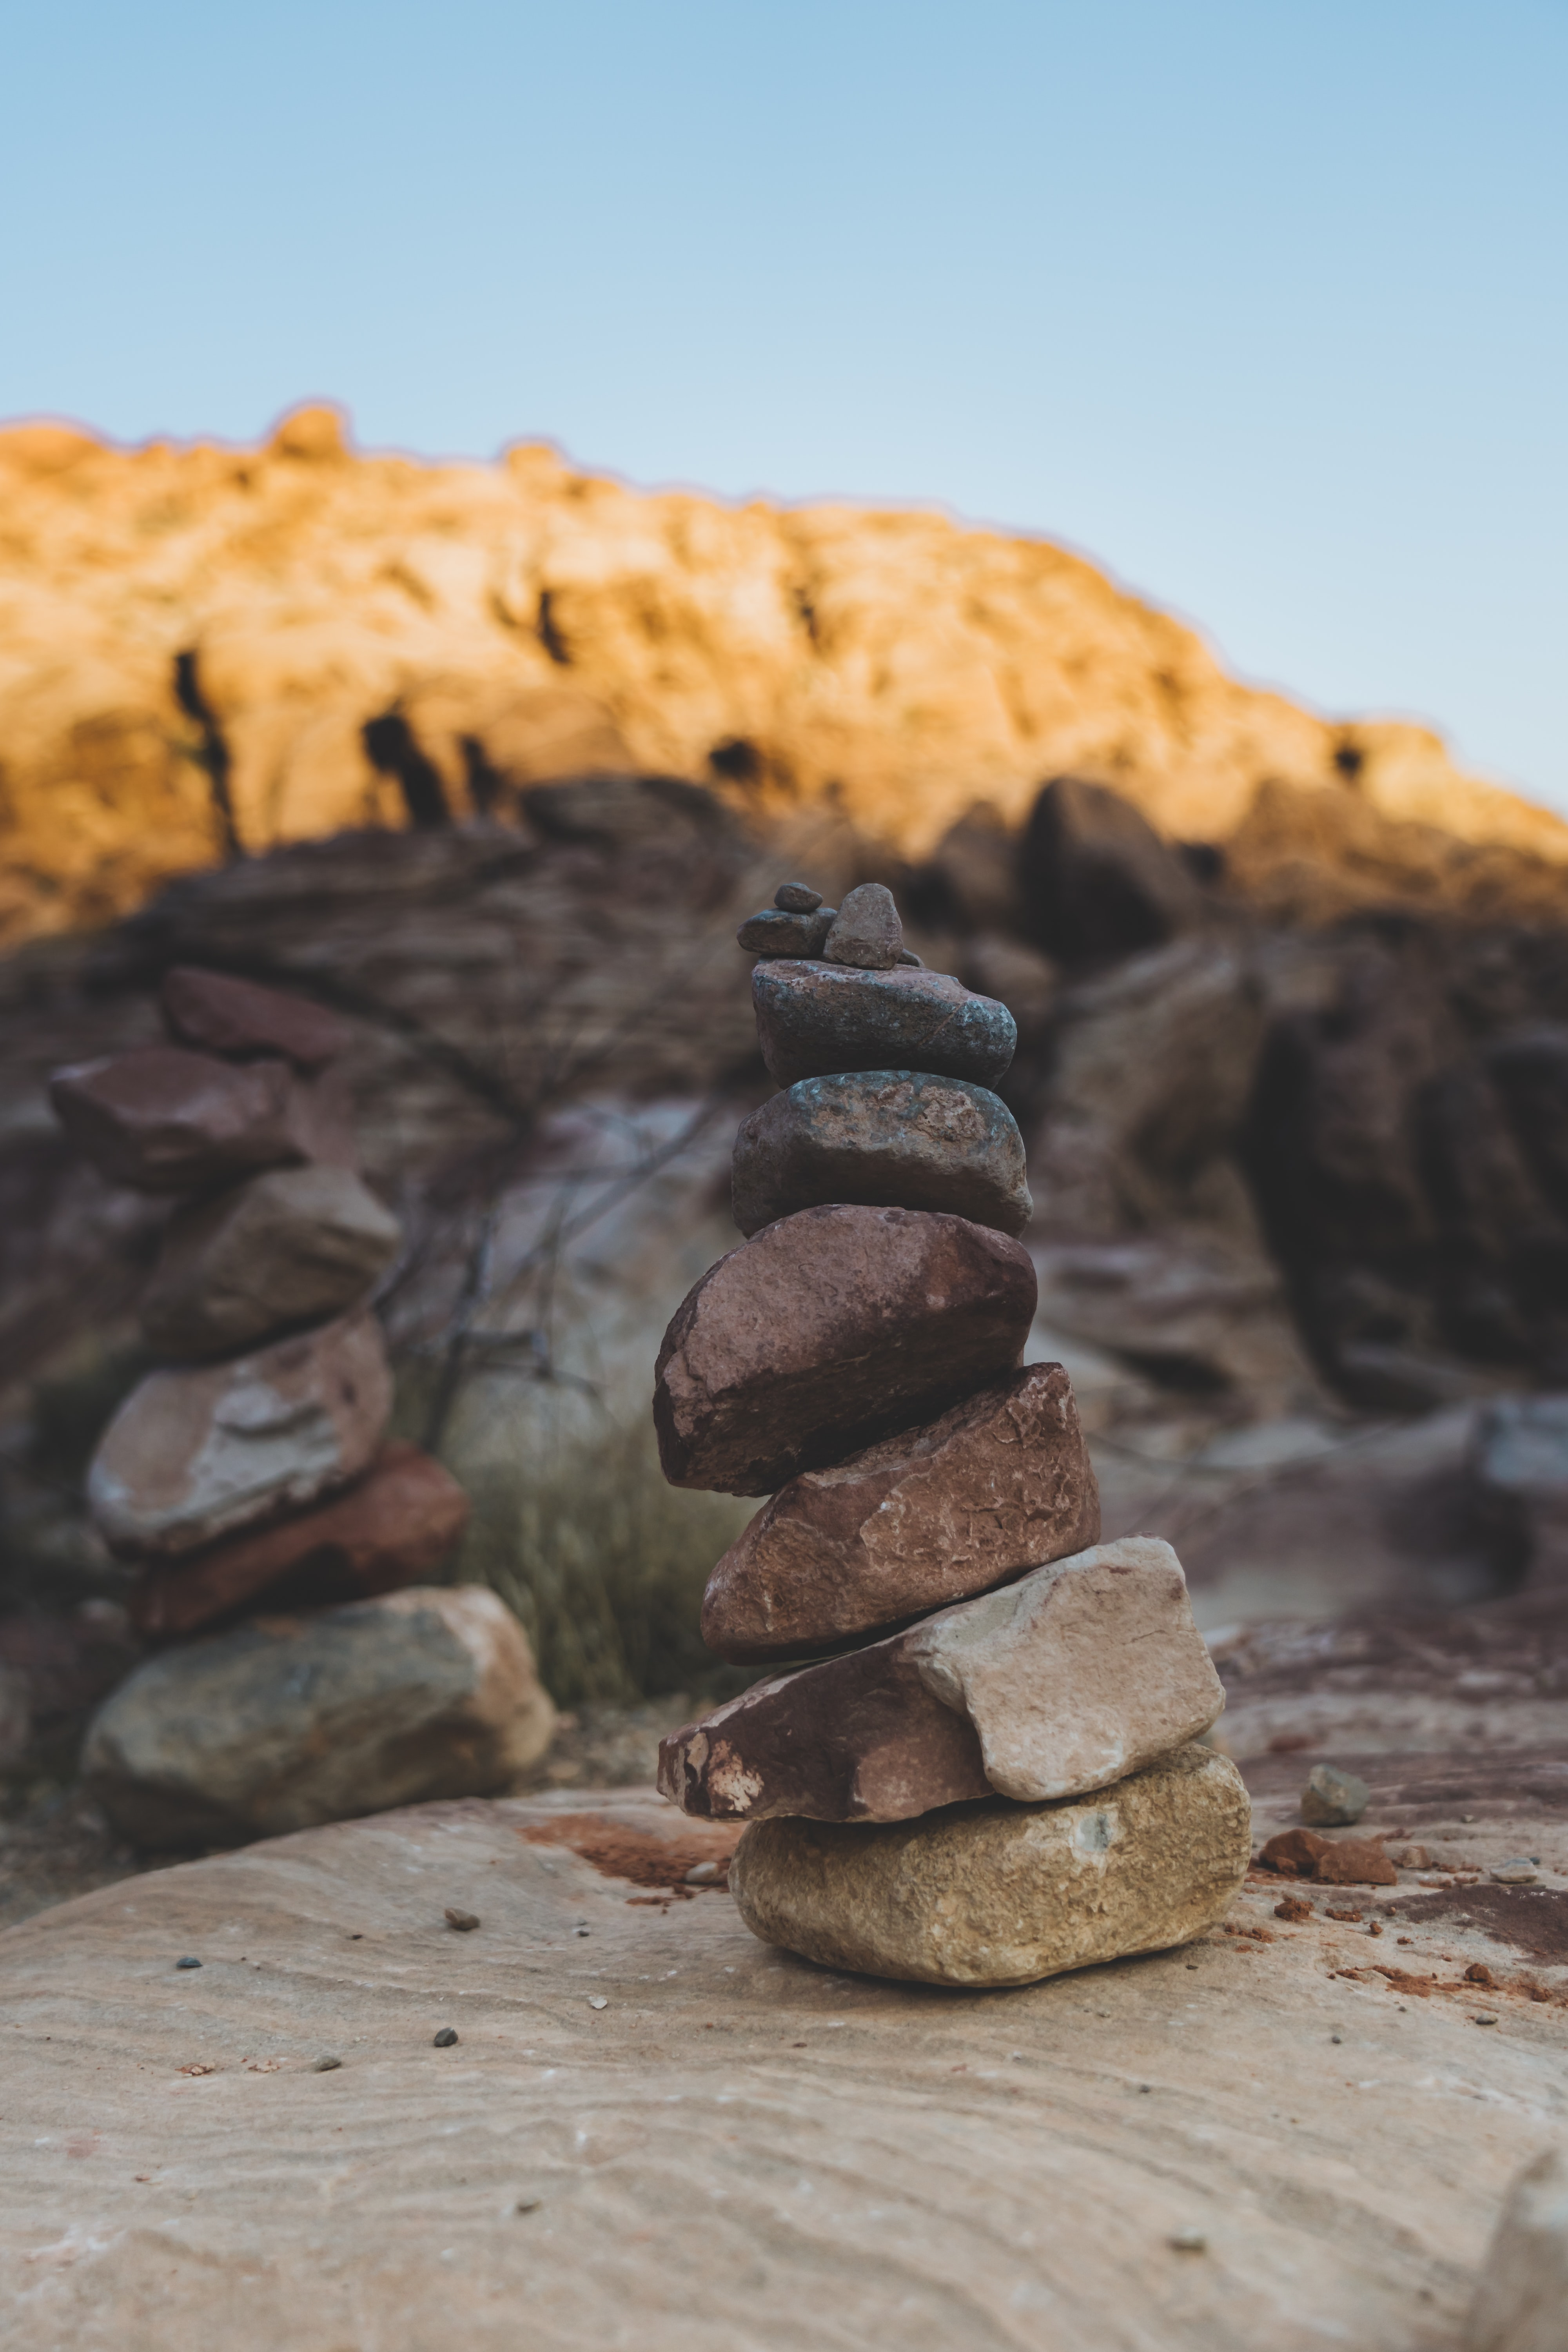 62152 download wallpaper Nature, Stones, Balance, Vertex, Top, Harmony screensavers and pictures for free